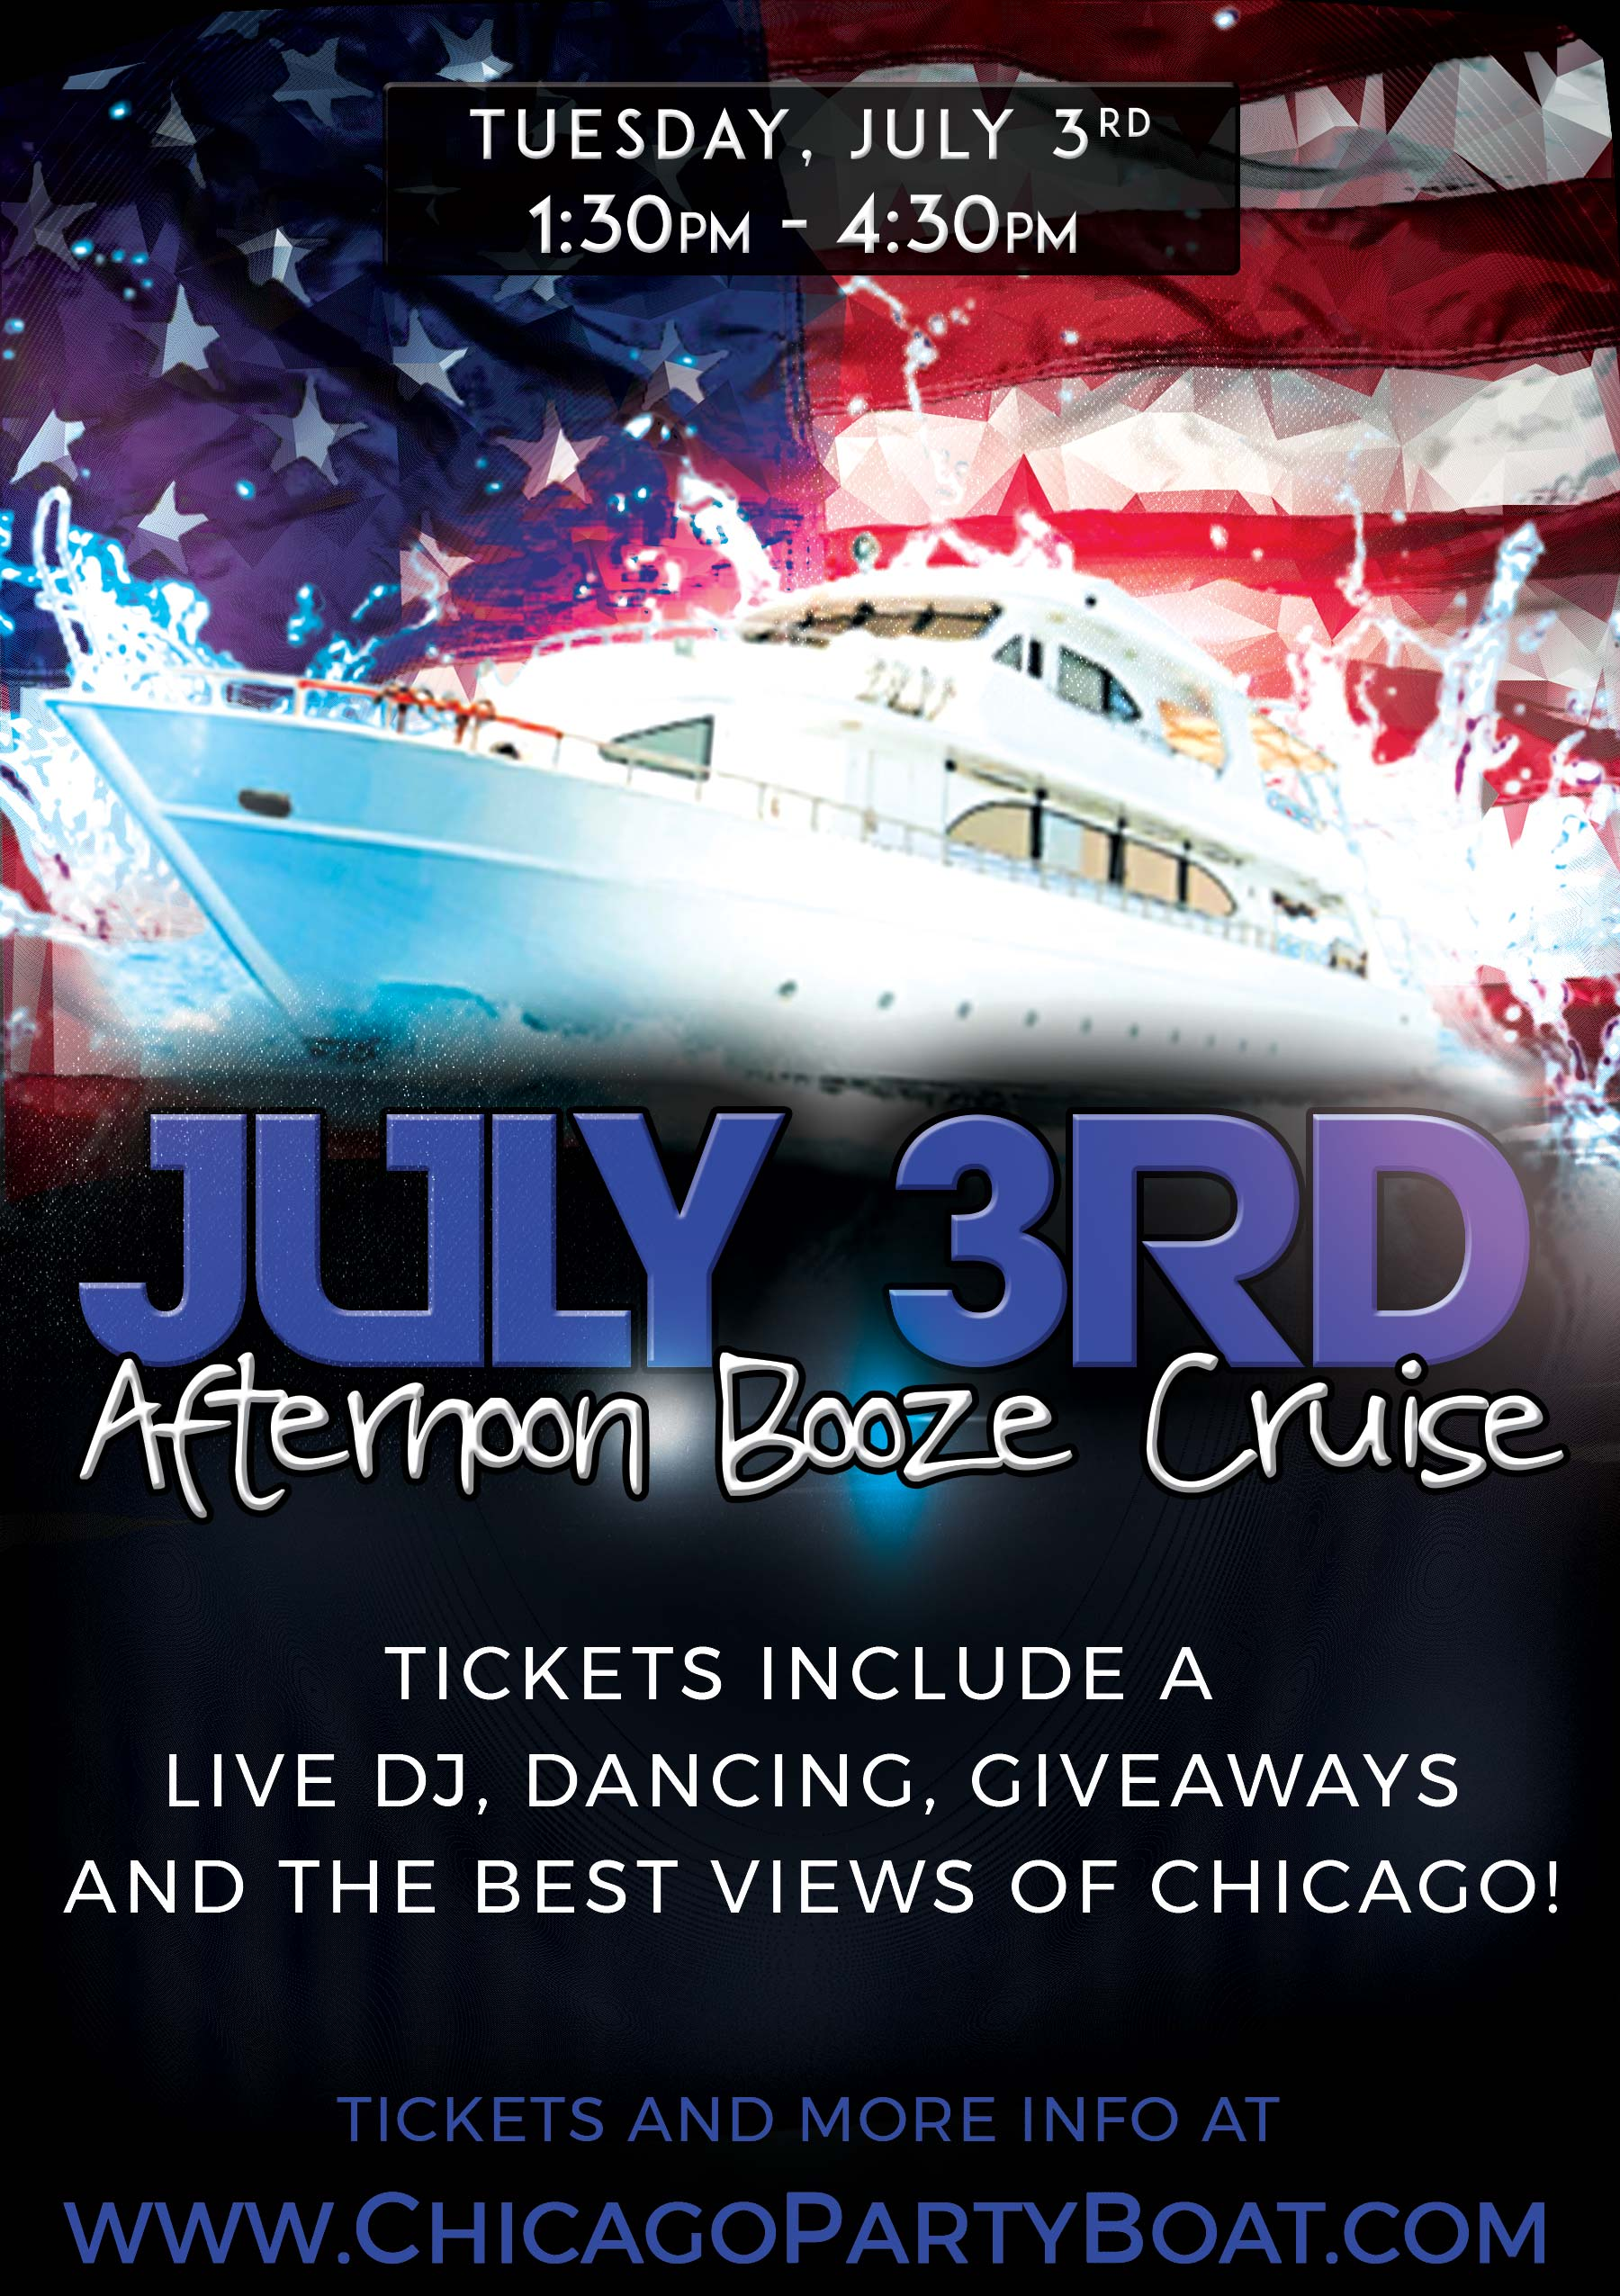 July 3rd Afternoon Booze Cruise Independence Day Party - Tickets include a Live DJ, Dancing, Giveaways, and the best views of Chicago!